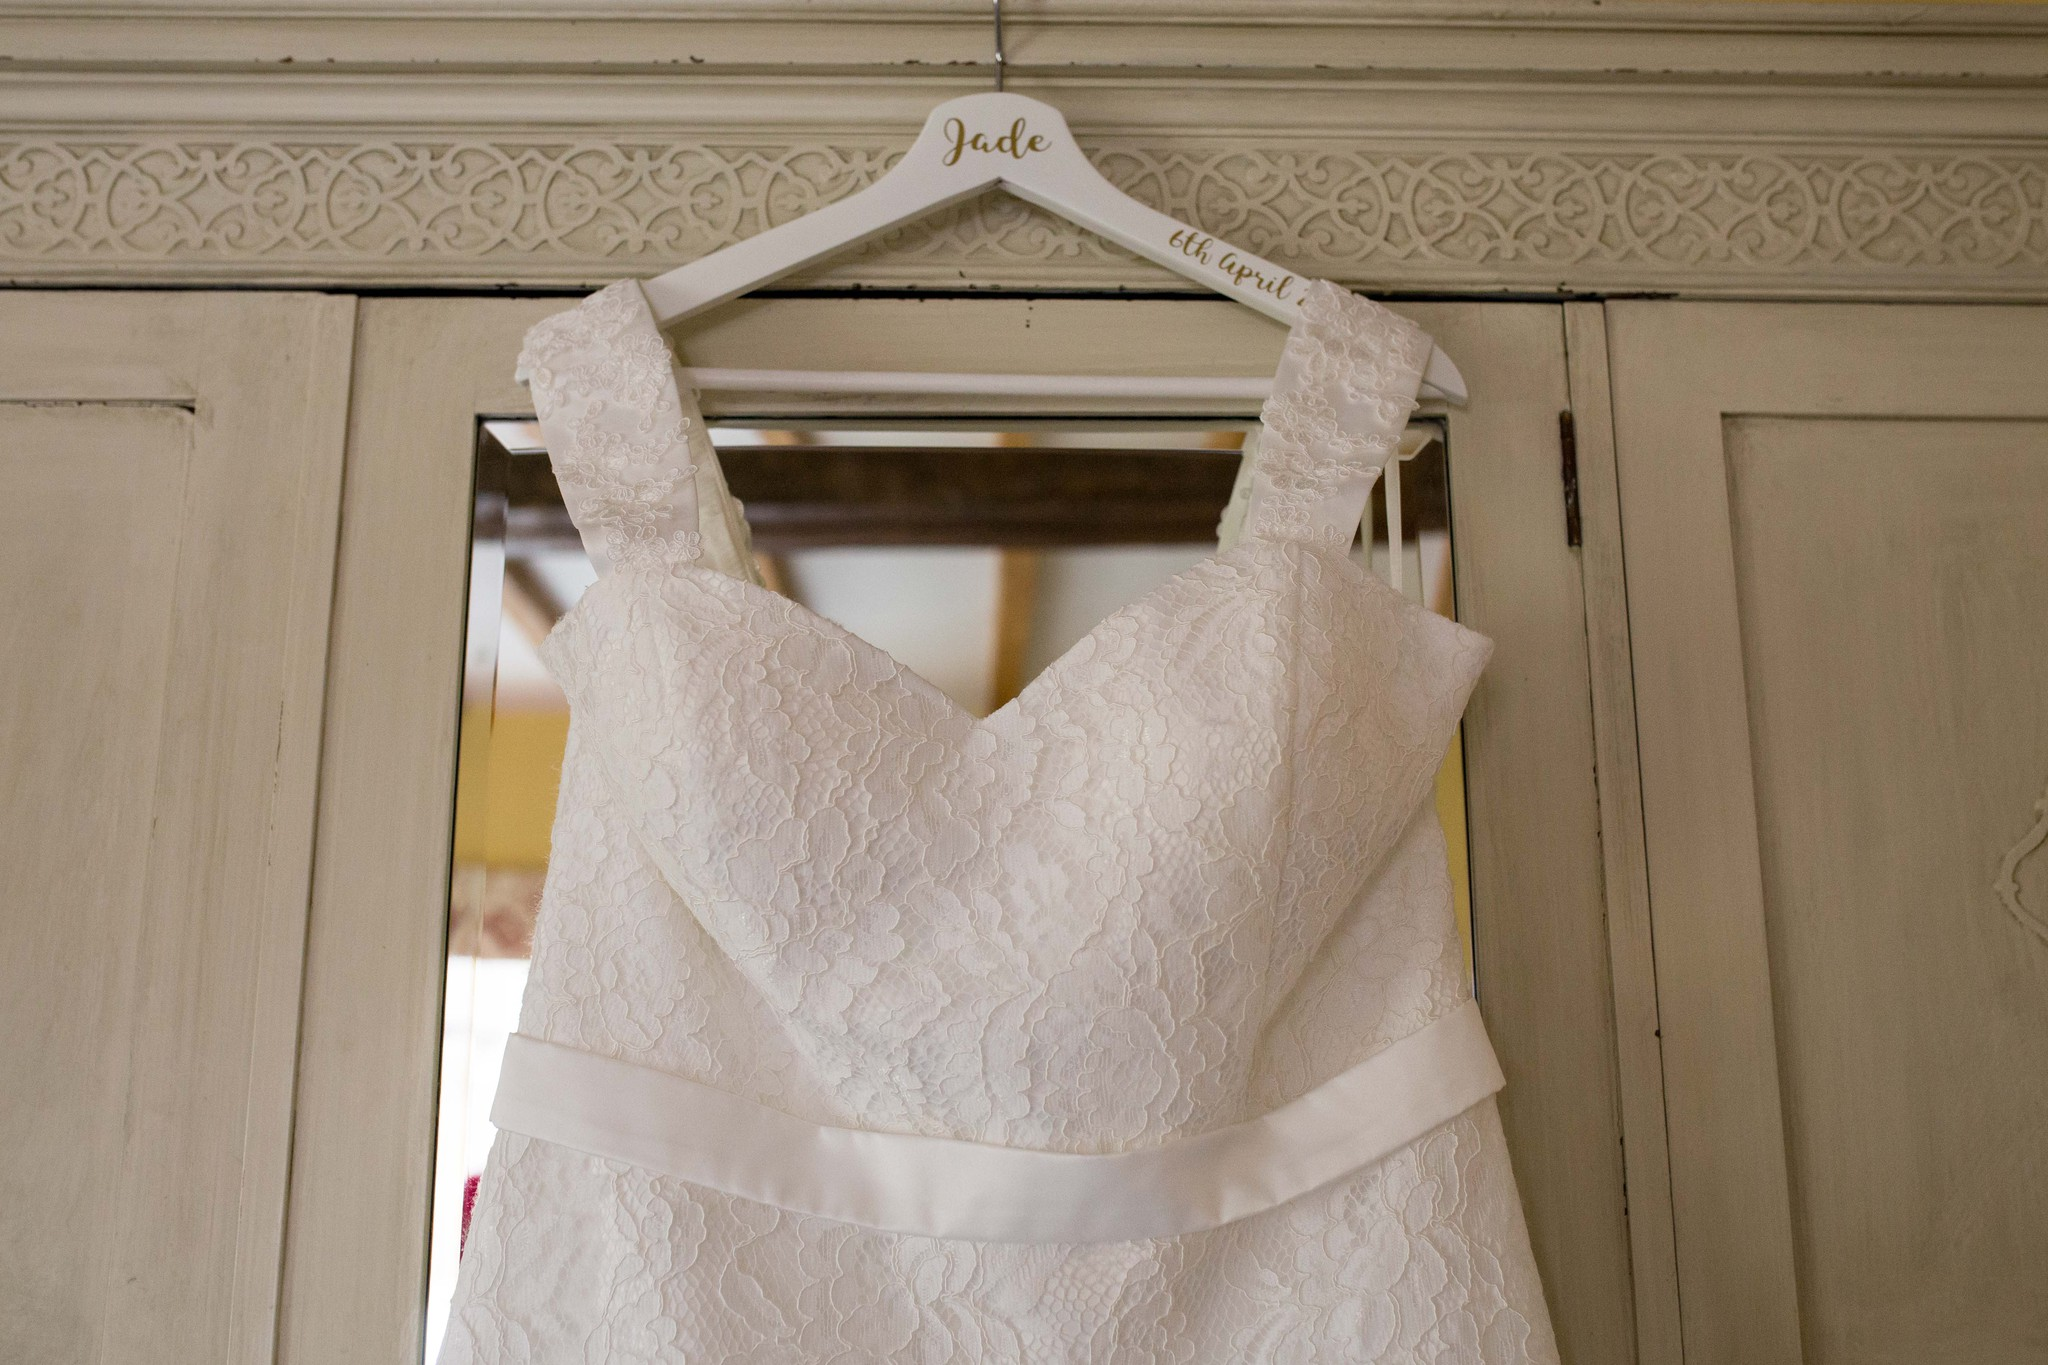 Delbury Hall wedding dress hanging on wardrobe door